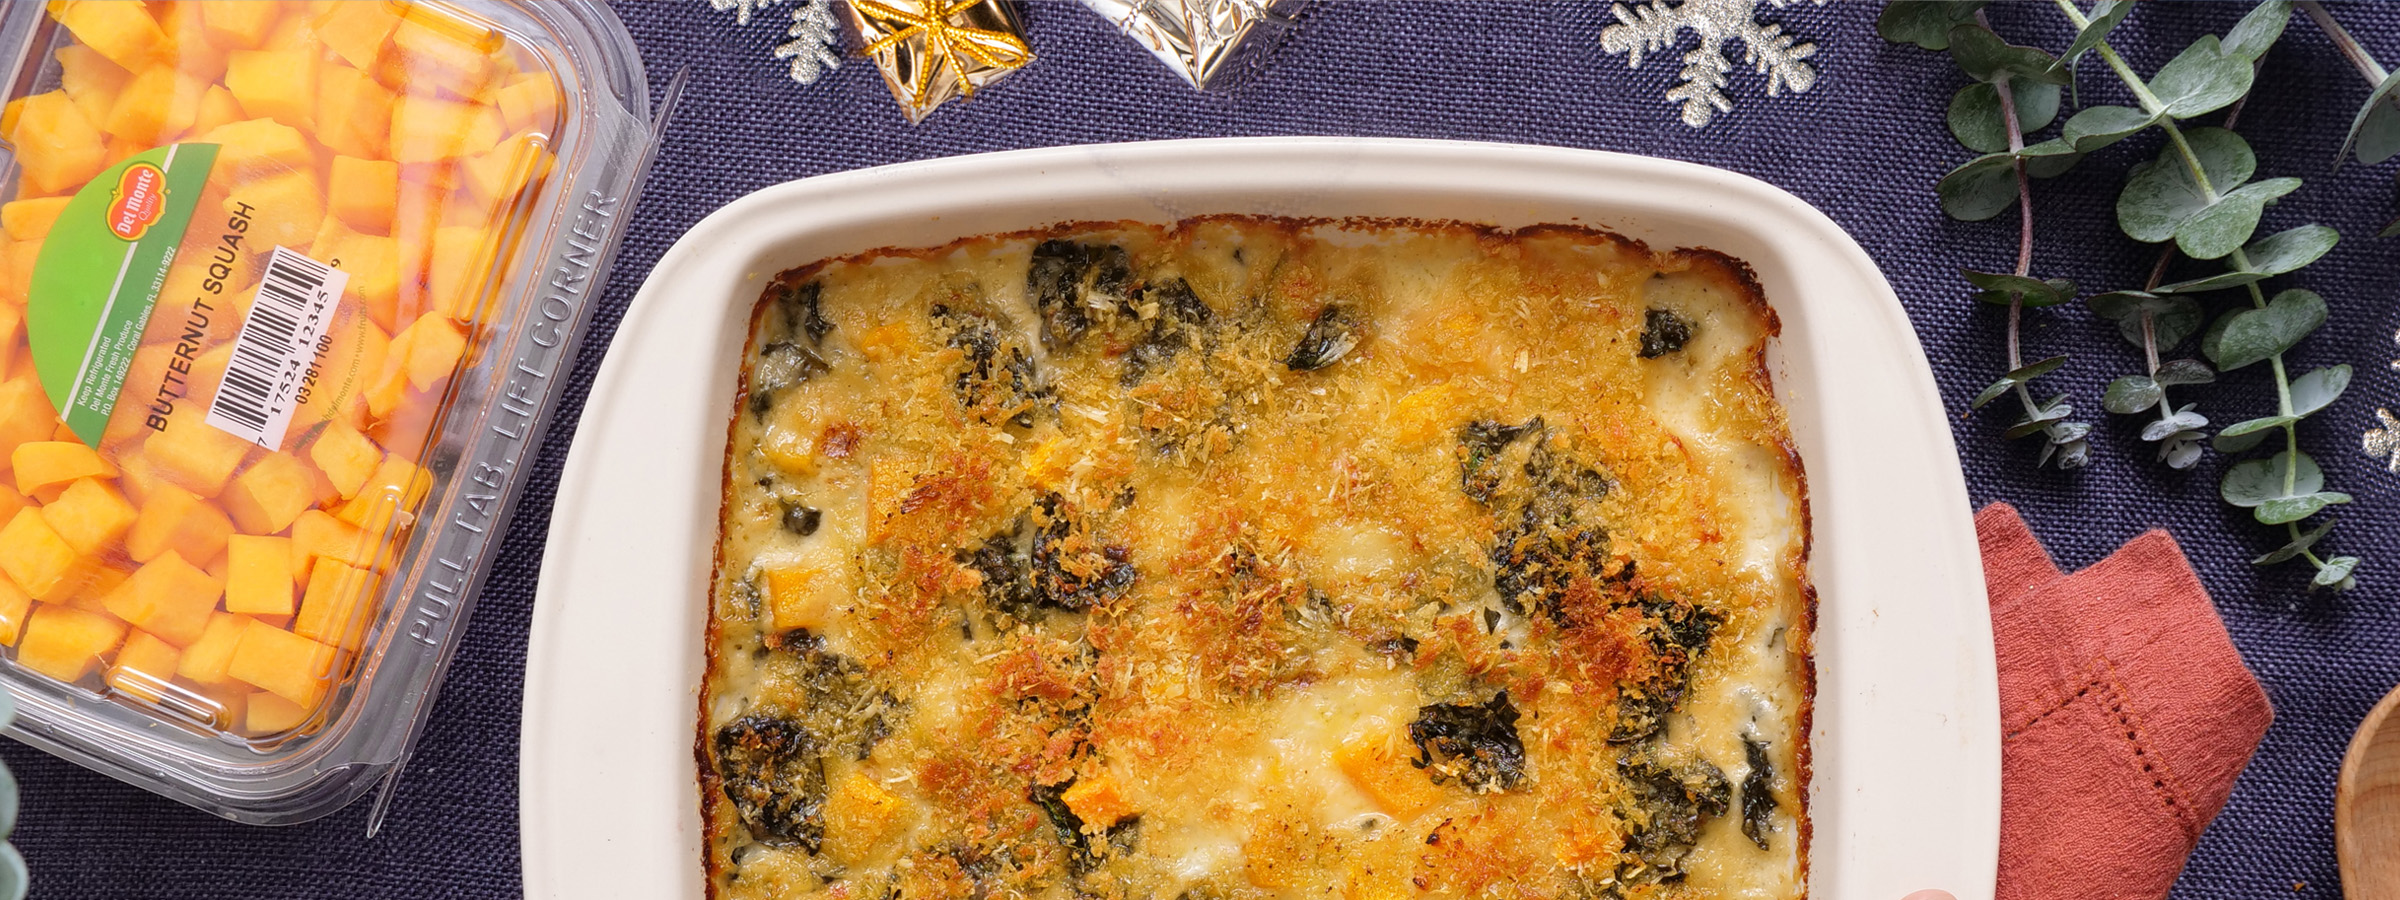 Homepage-Banner_Try-Our-Recipes_Butternut-Squash-Kale-Gratin_Dec-2019